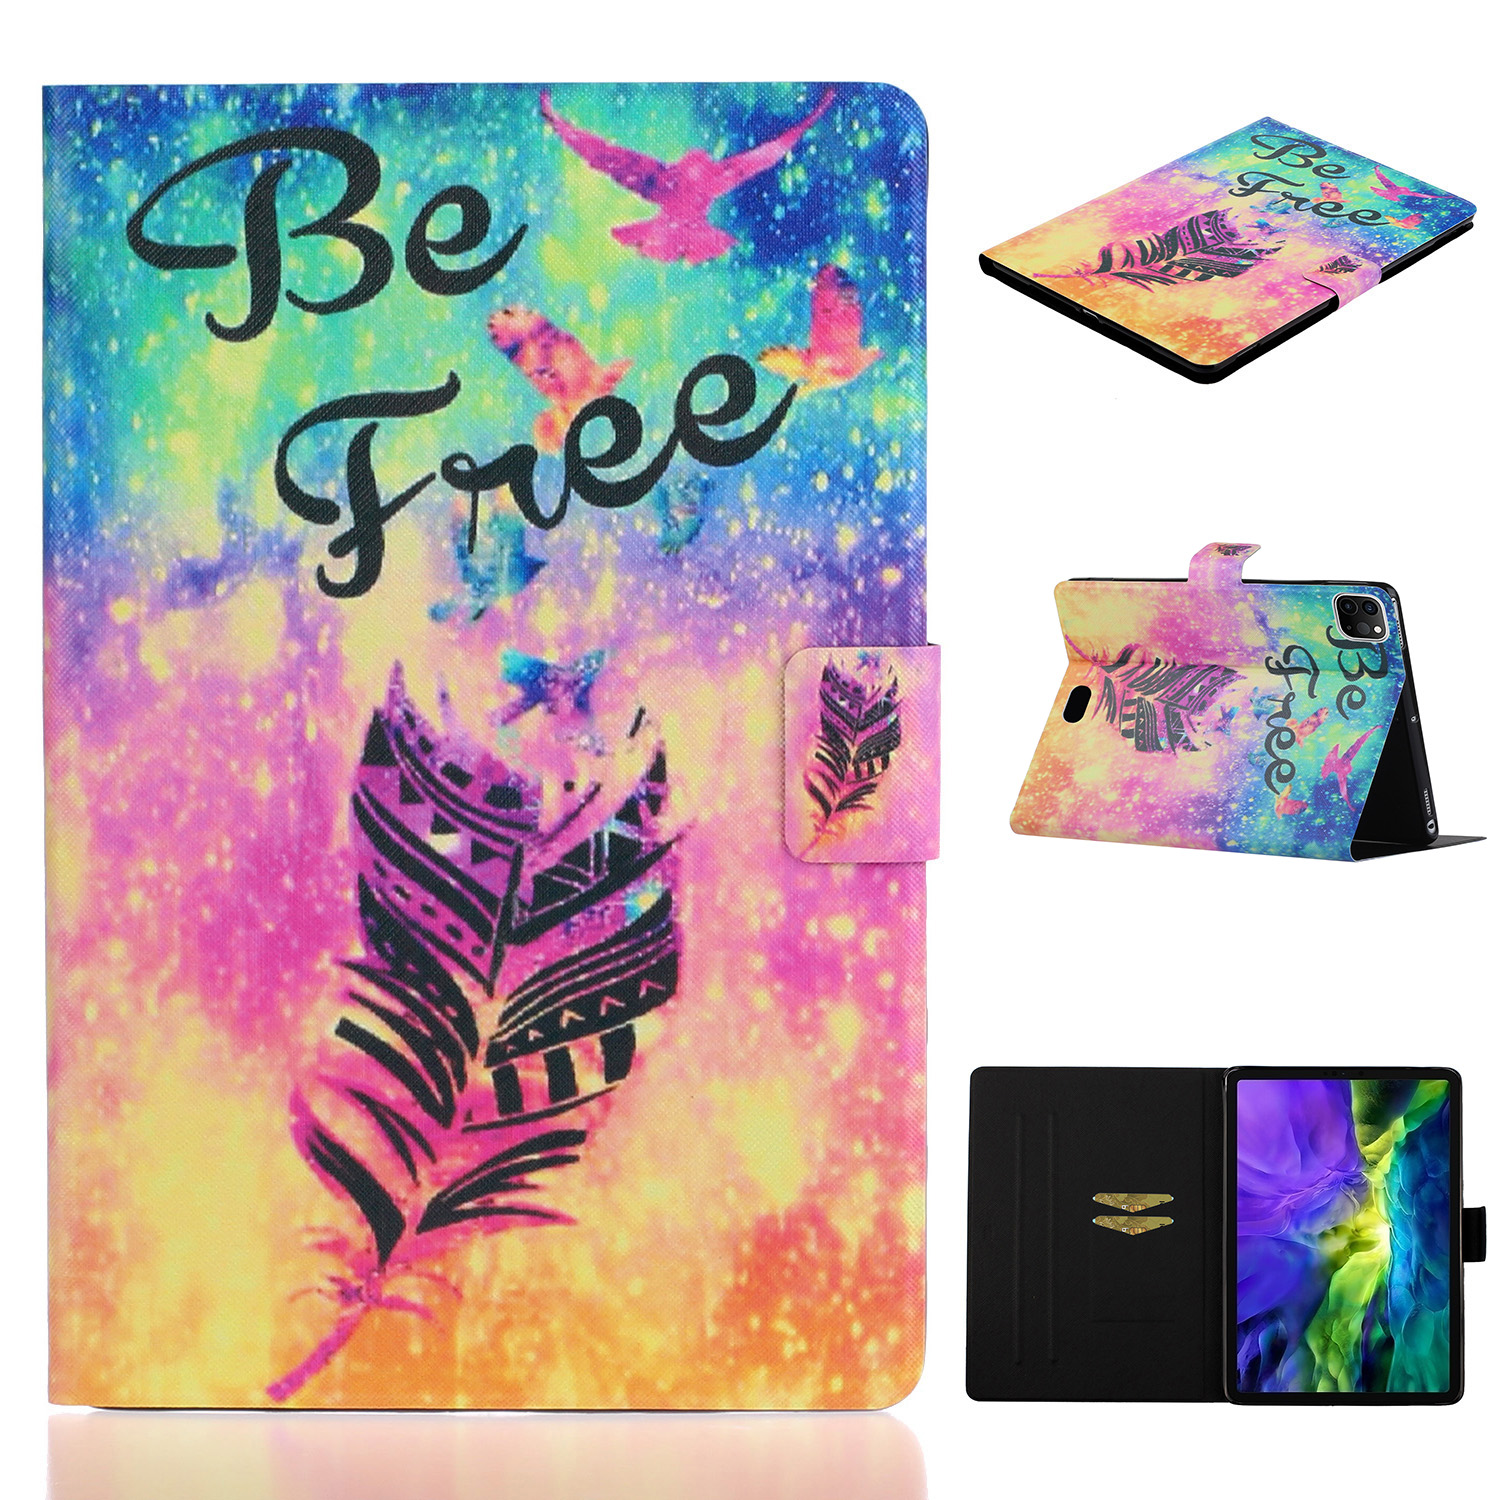 5 Black For iPad Pro 11 inch 2020 Case Cheap PU Leather Painted Smart Folio Case for iPad